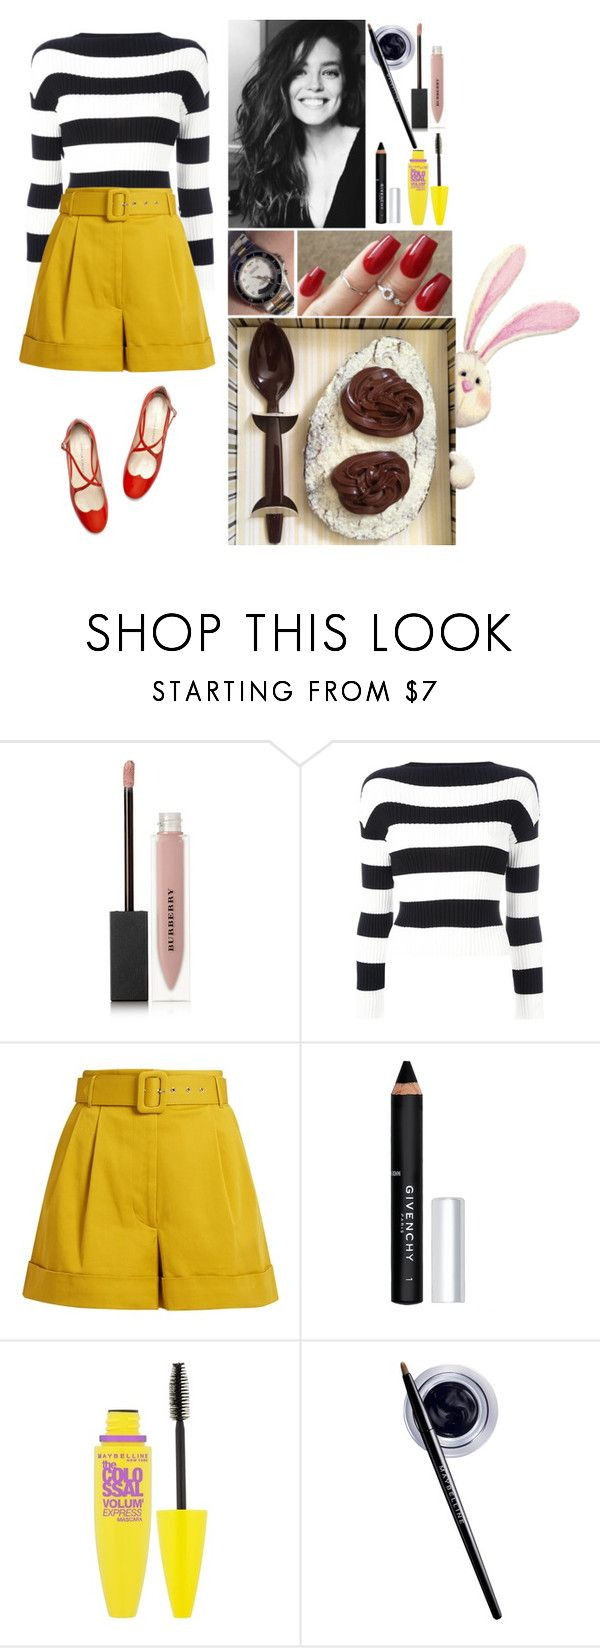 """Easter!"" by annacastrolima ❤ liked on Polyvore featuring Burberry, GET LOST, Boutique Moschino, Isa Arfen, Givenchy, Maybelline, Easter, chocolate, easteregg and chocolateegg"